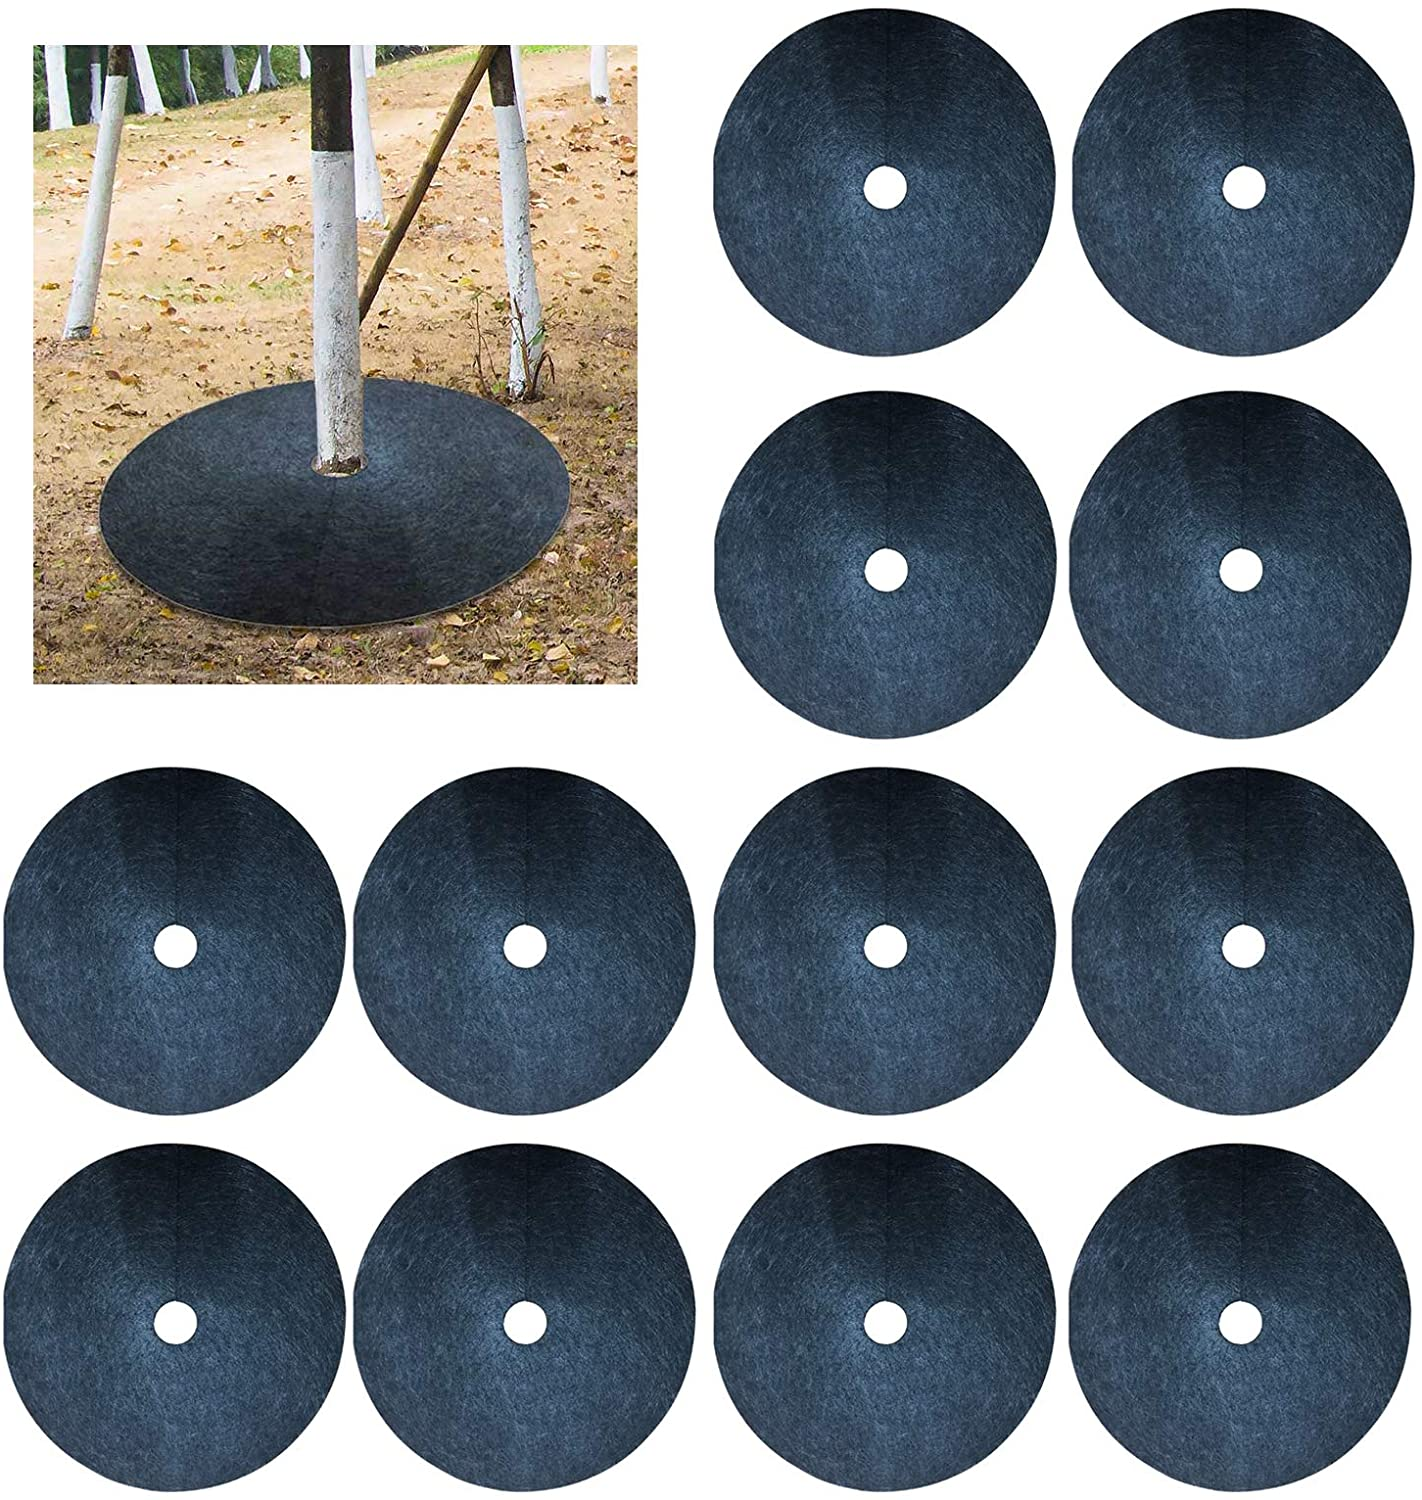 XINdream 36 Pack Tree Ring Landscaping, 16.5in Recycled Anti Grass Tree Mulch Mat Ring, Degradable Tree Protector Mat Plant Cover for Weed Control Root Protection (Black)